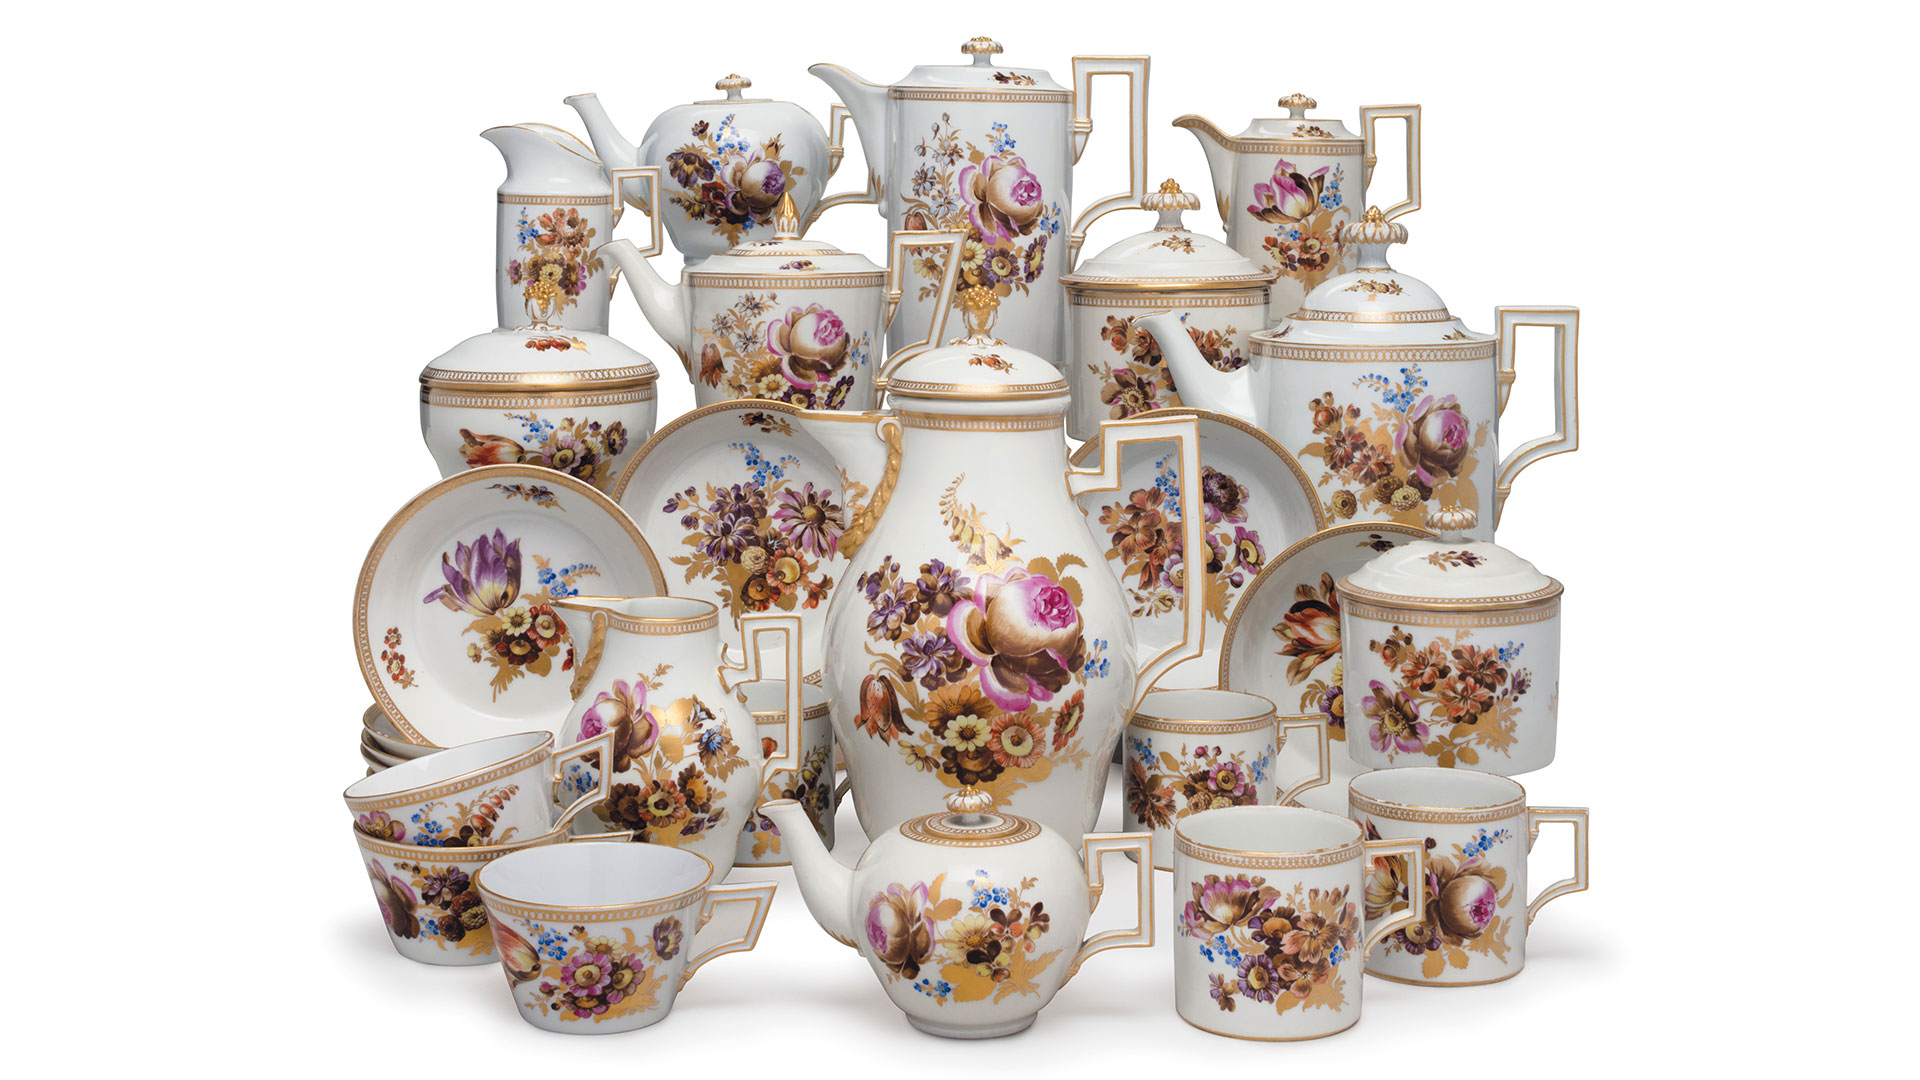 Messien porcelain tea and coffee service, circa 1780